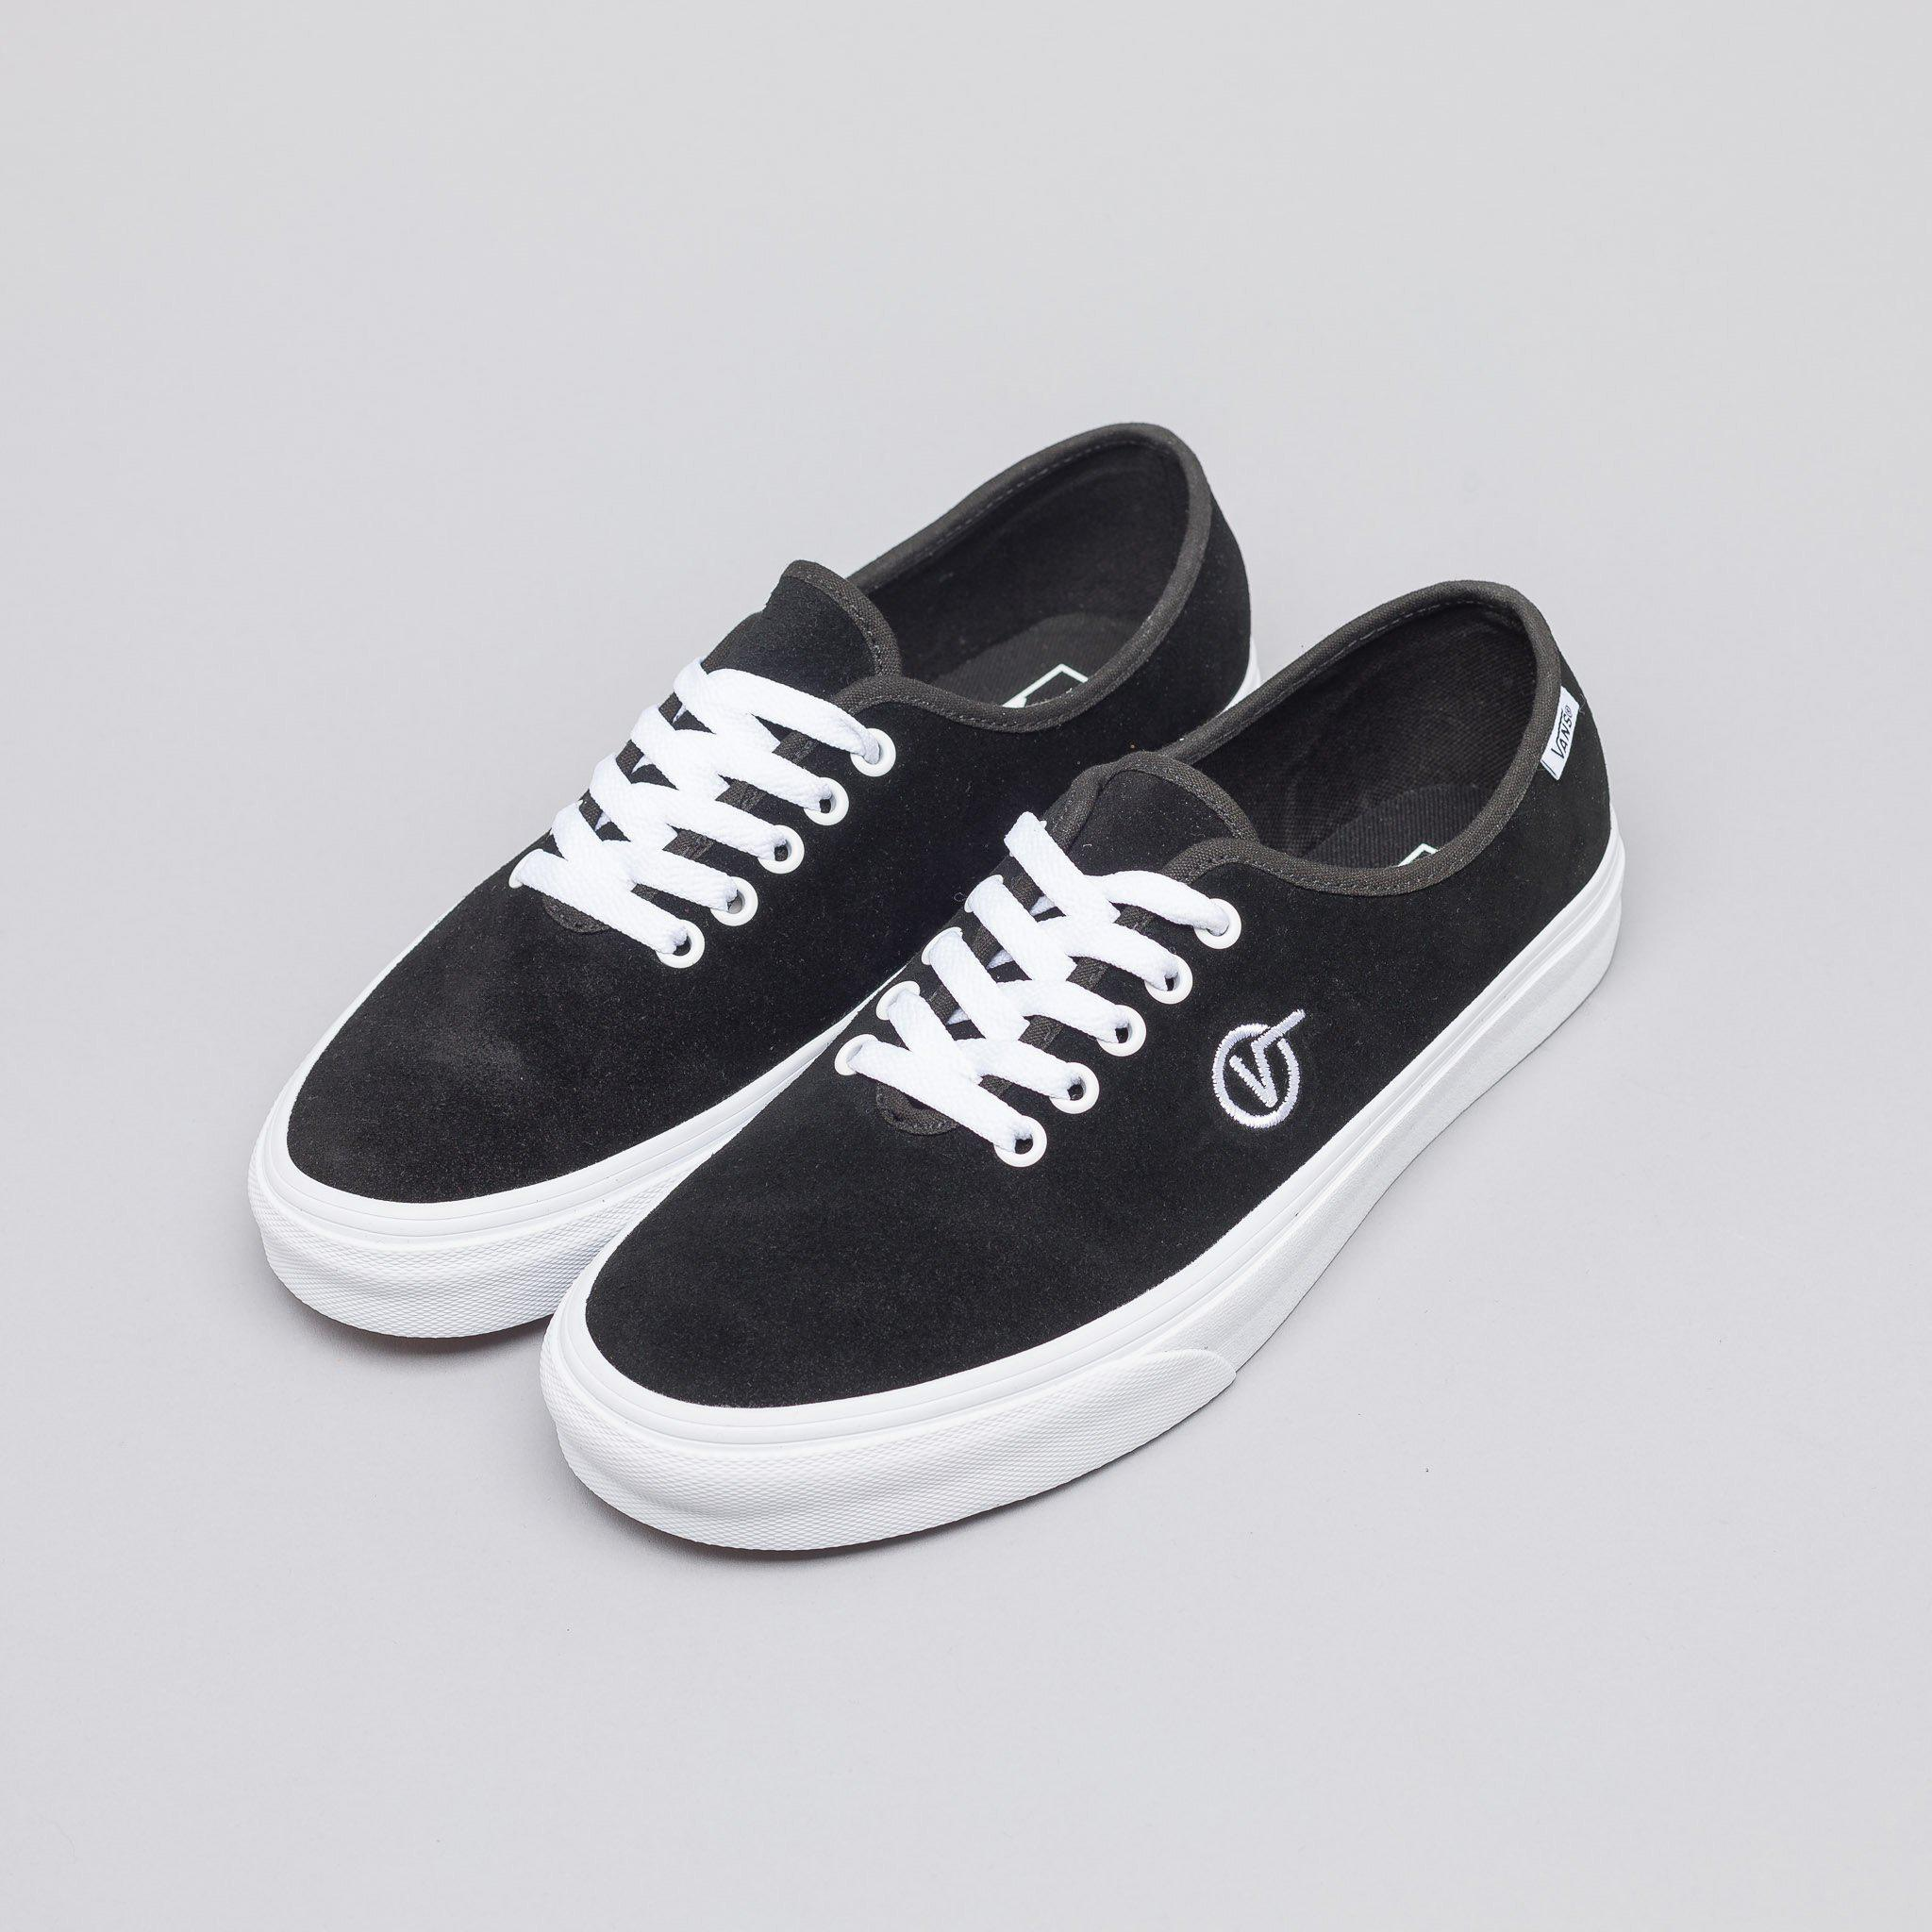 96f4cb68e37ab9 Lyst - Vans Authentic One Piece Circle V in Black for Men